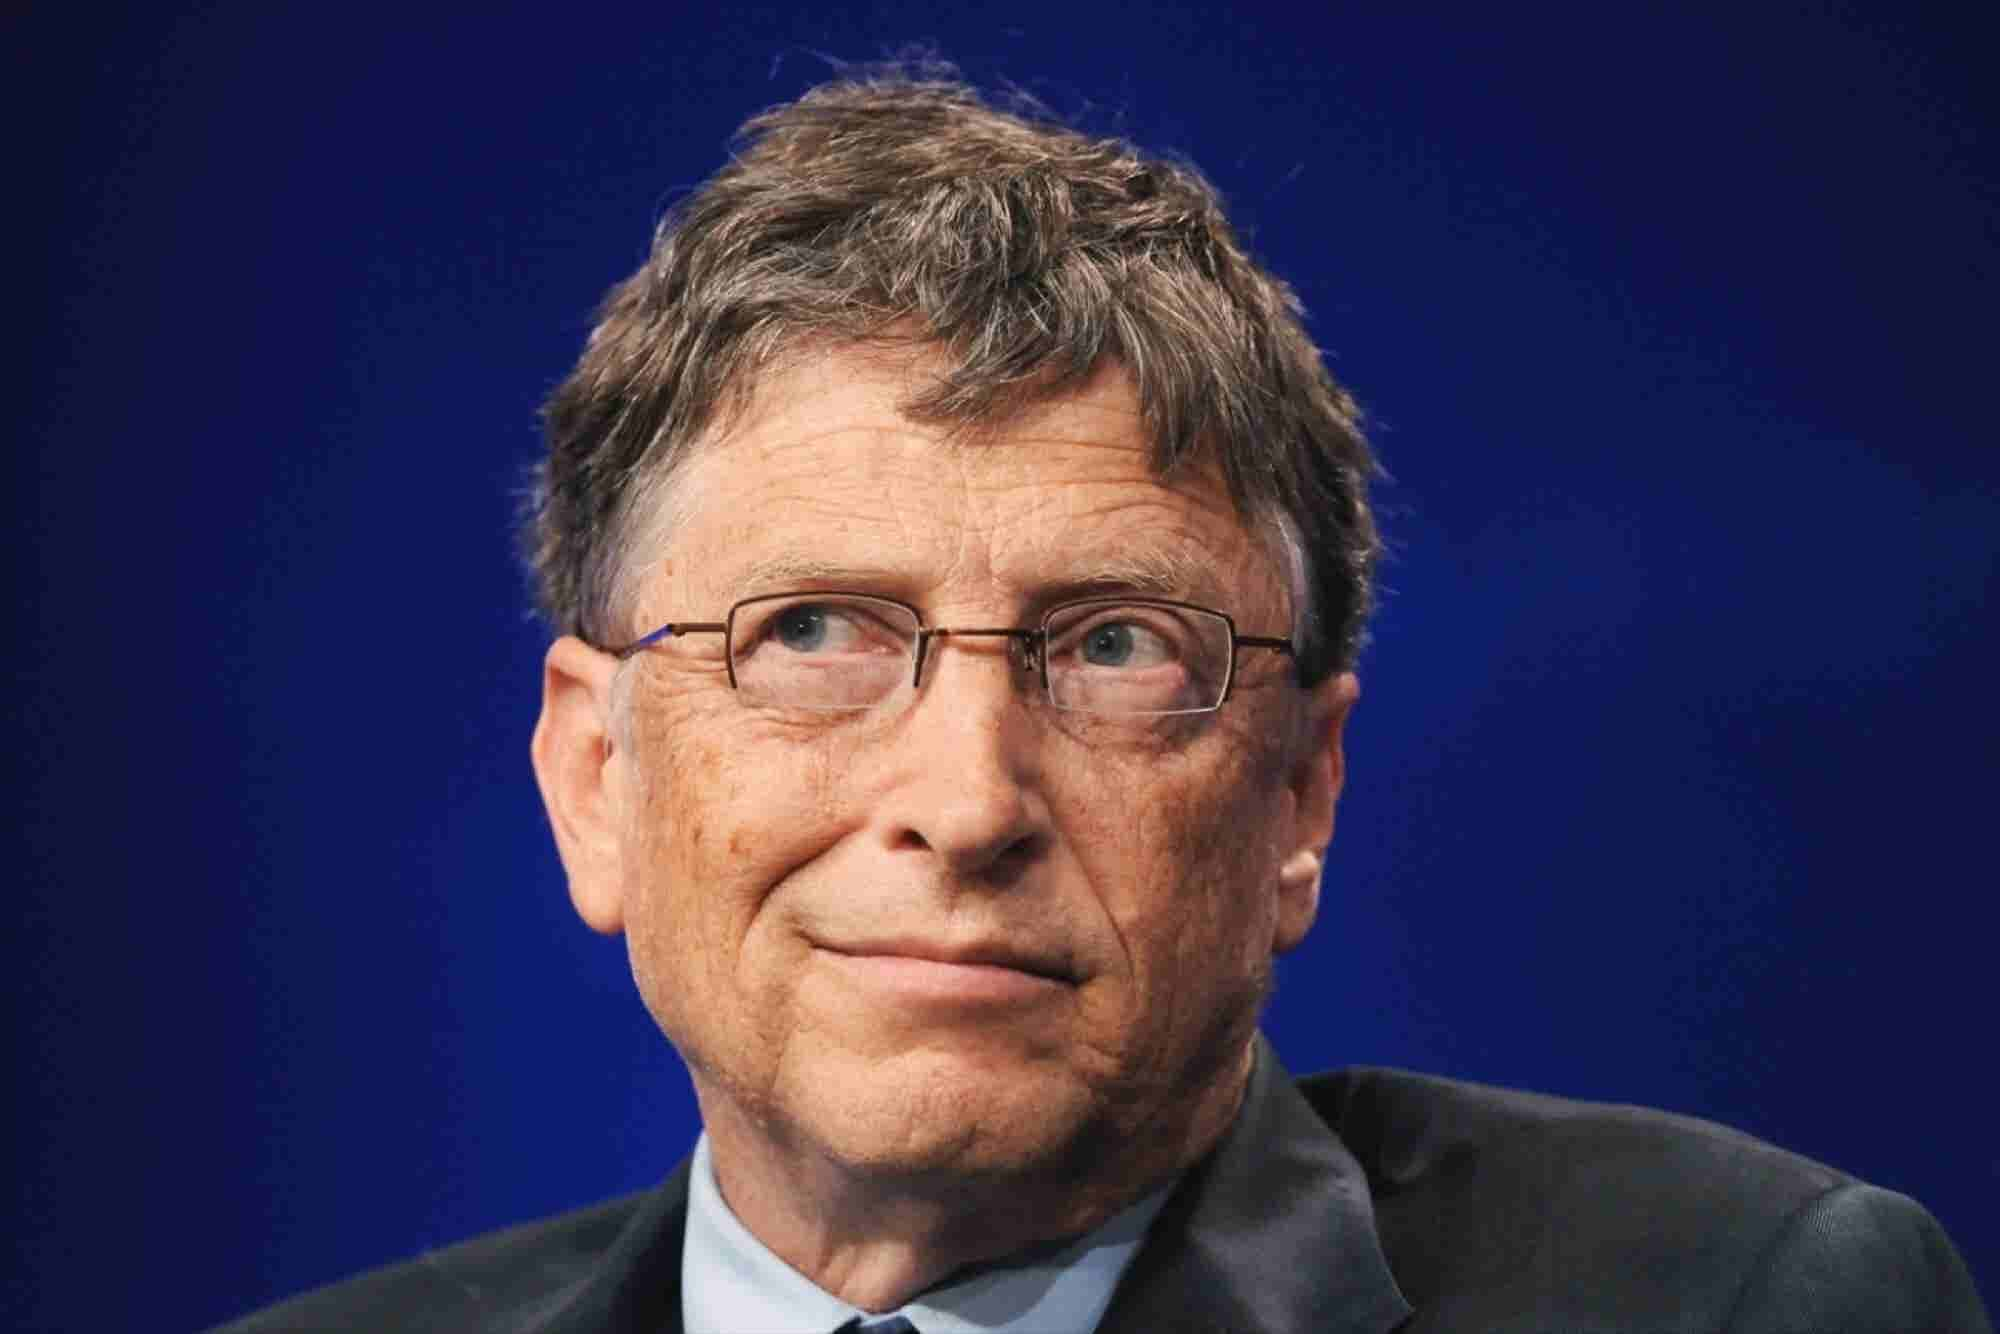 Bill Gates Has Spent $1 Billion on Renewable Energy -- And He Wants to Spend Even More